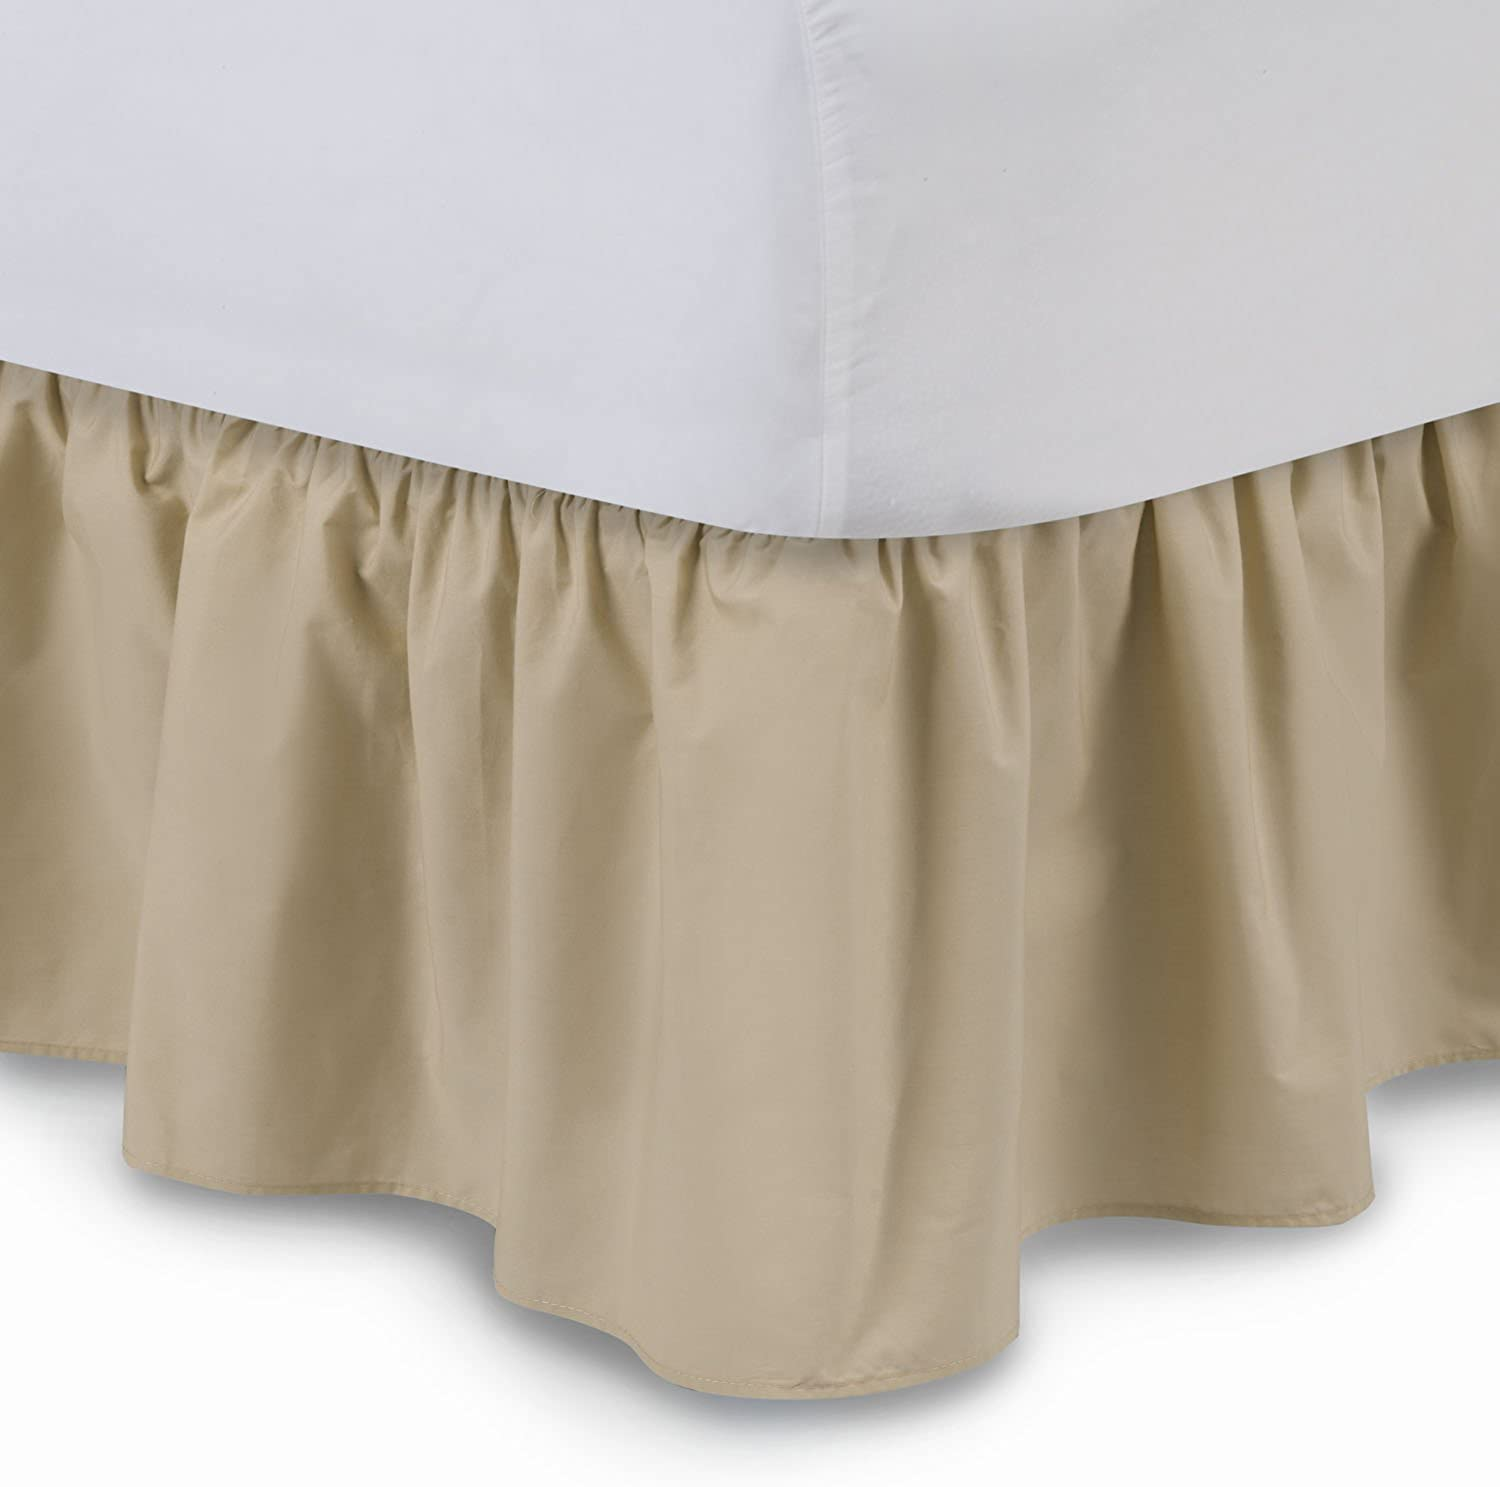 Ruffled Bed Skirt (King, Stone) 21 Inch Drop Bedskirt with Platform, Wrinkle and Fade Resistant - by Harmony Lane (Available in All Bed Sizes and 16 colors)